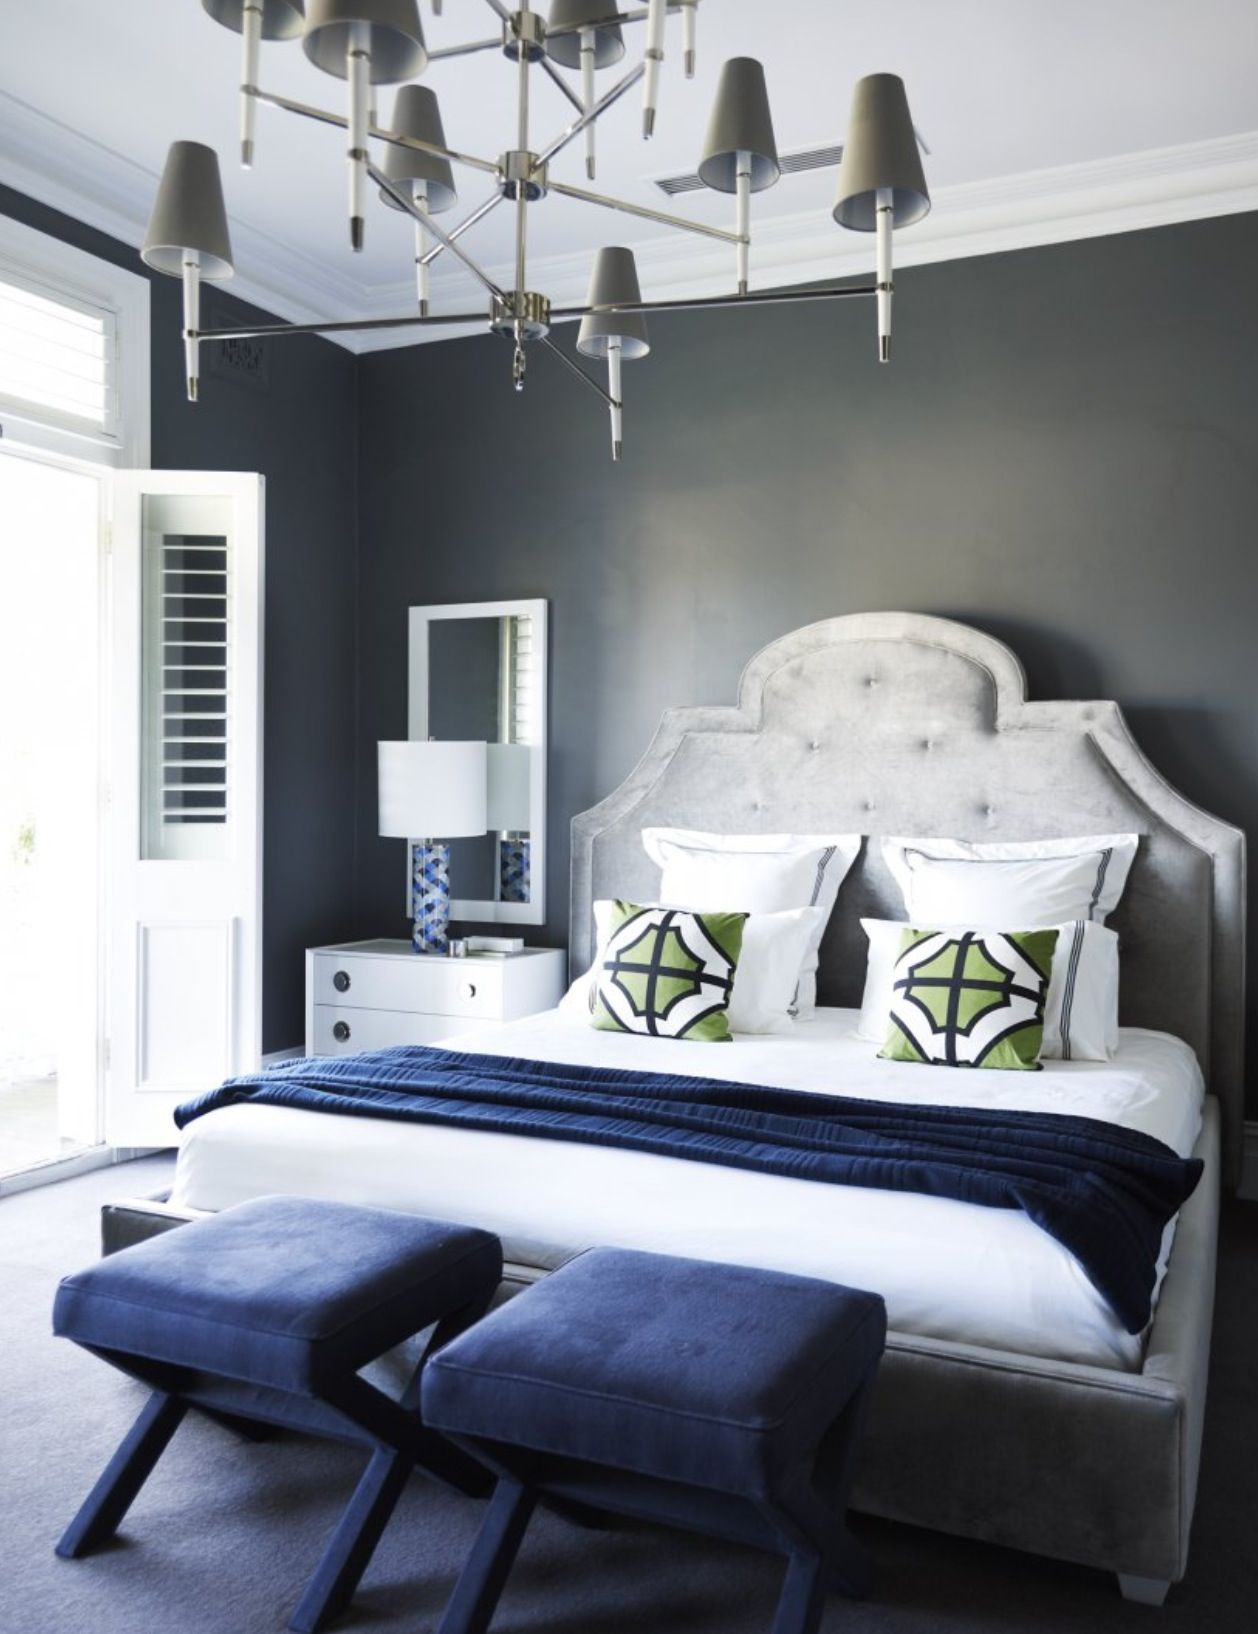 flip flop walls and headboard-light grey paint with darker grey